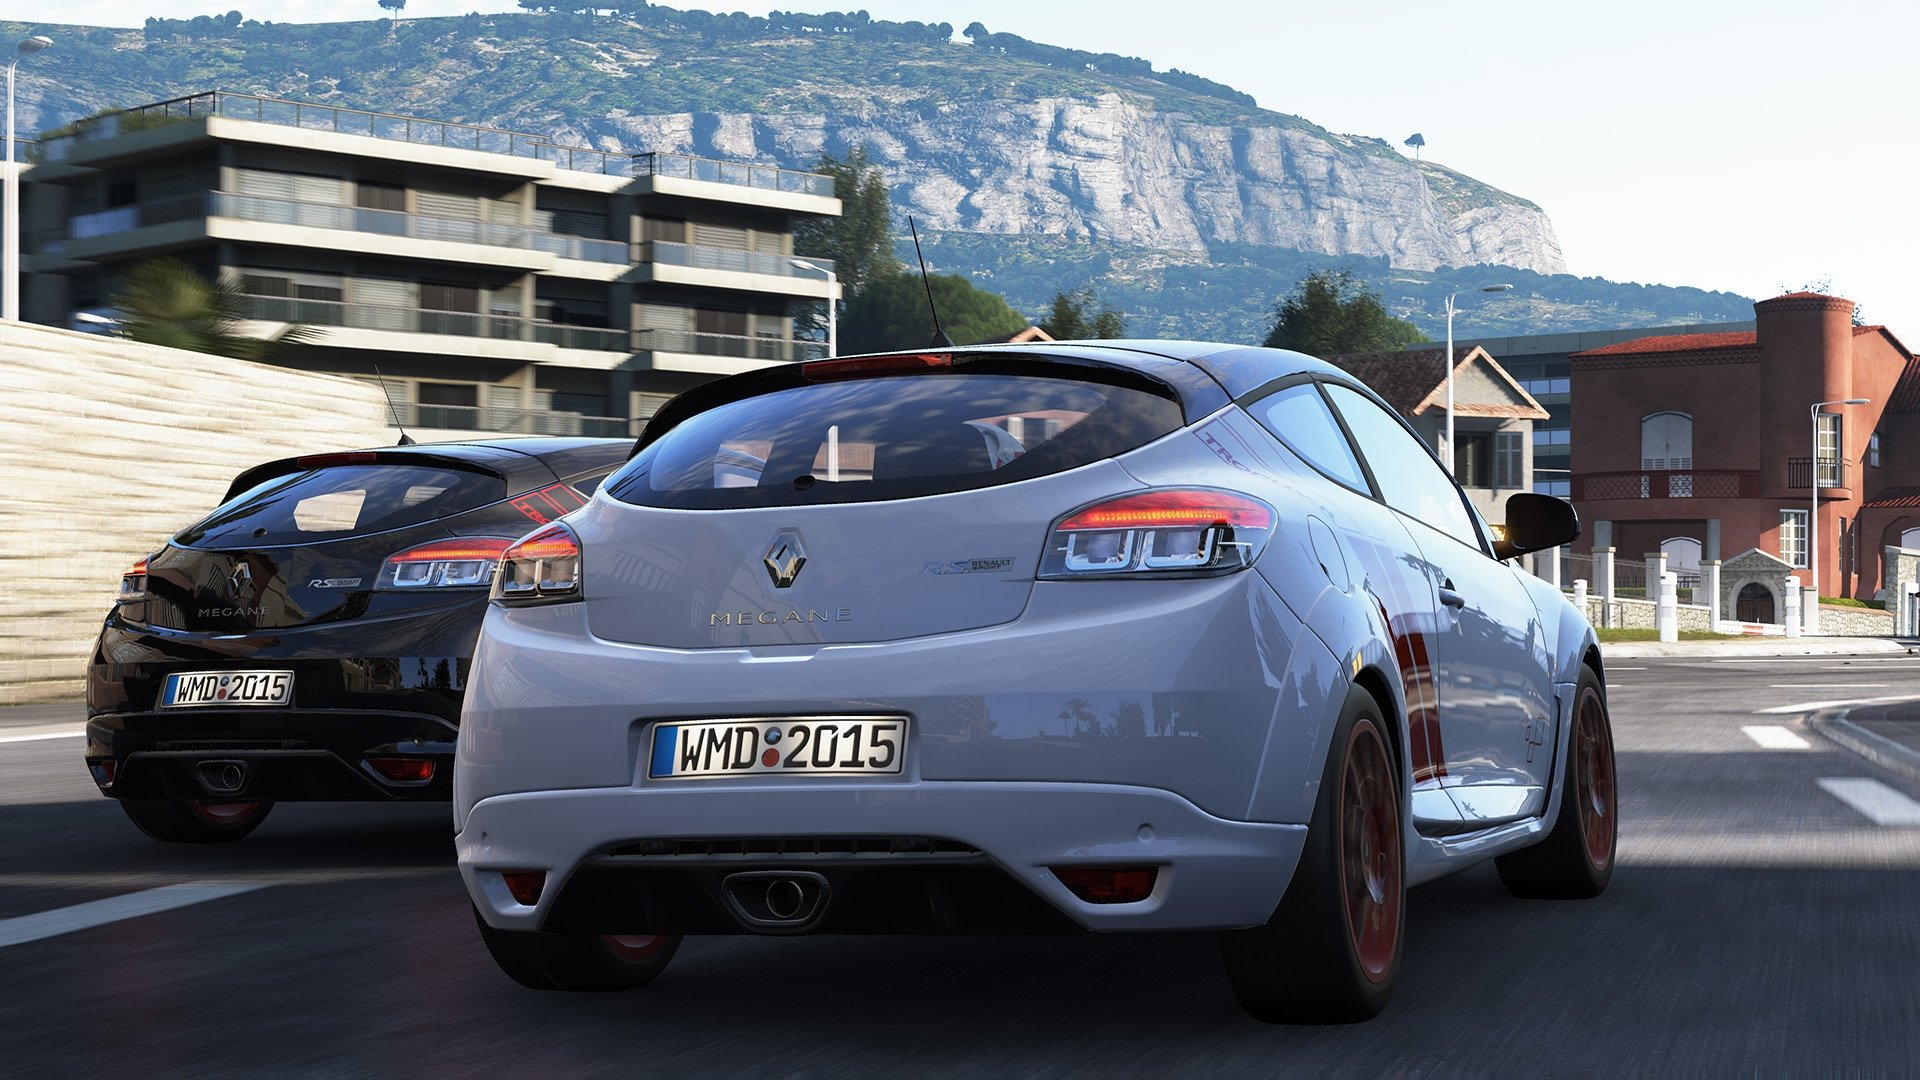 project cars game of the year edition xbox one j t kok. Black Bedroom Furniture Sets. Home Design Ideas